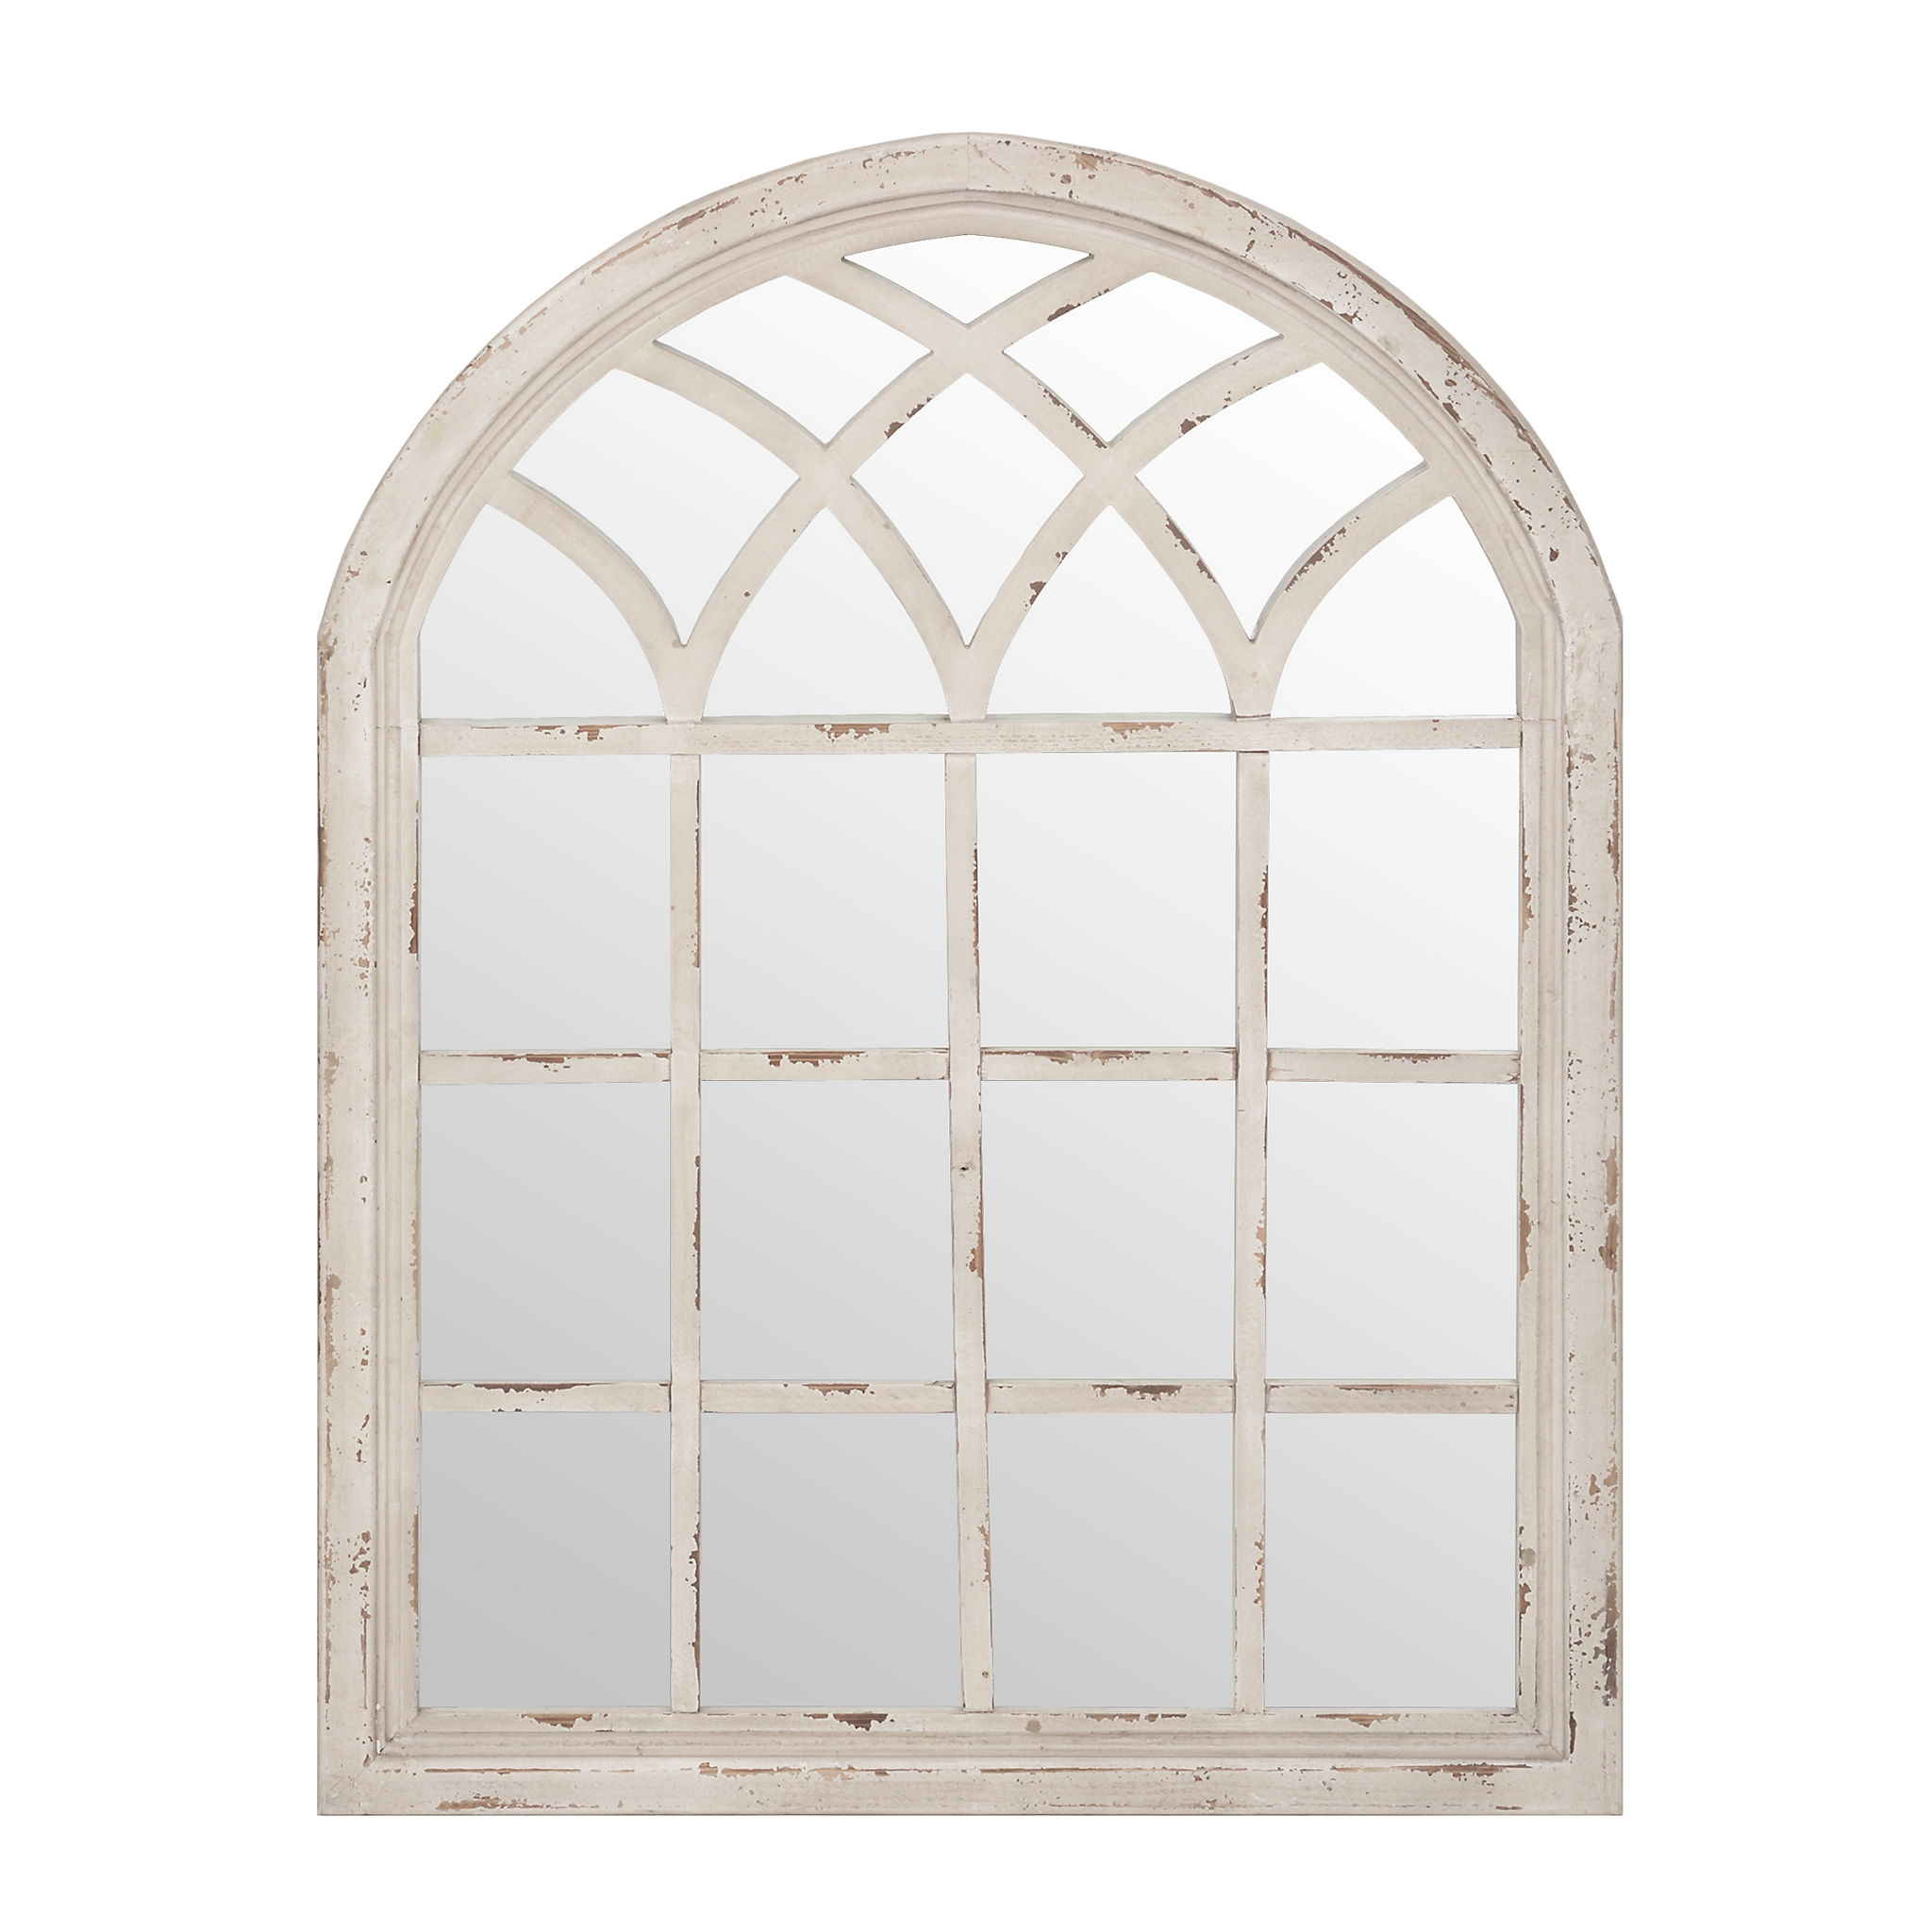 Distressed Cream Sadie Arch Mirror Kirklands 35×45 125 Regarding Distressed Cream Mirror (Image 8 of 15)